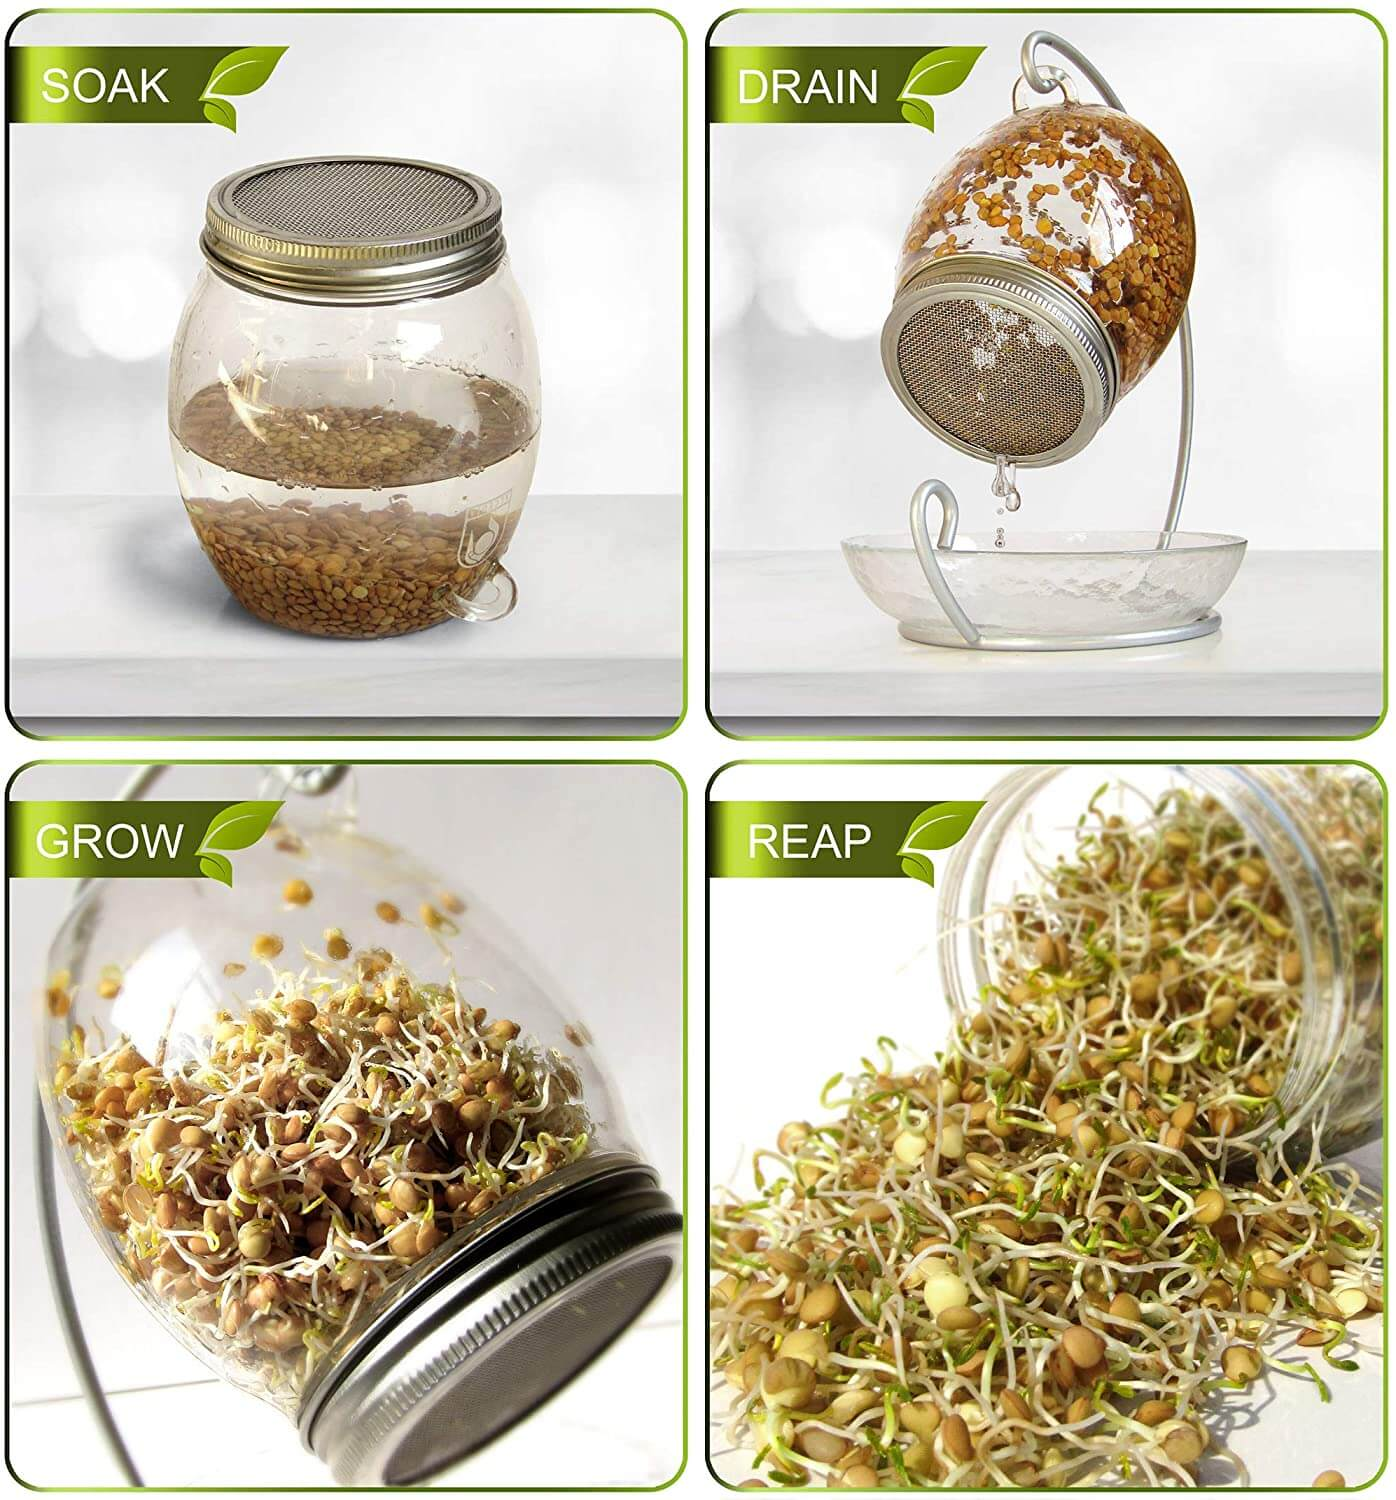 The complete process of growing sprouts in a glass sprout jar at home